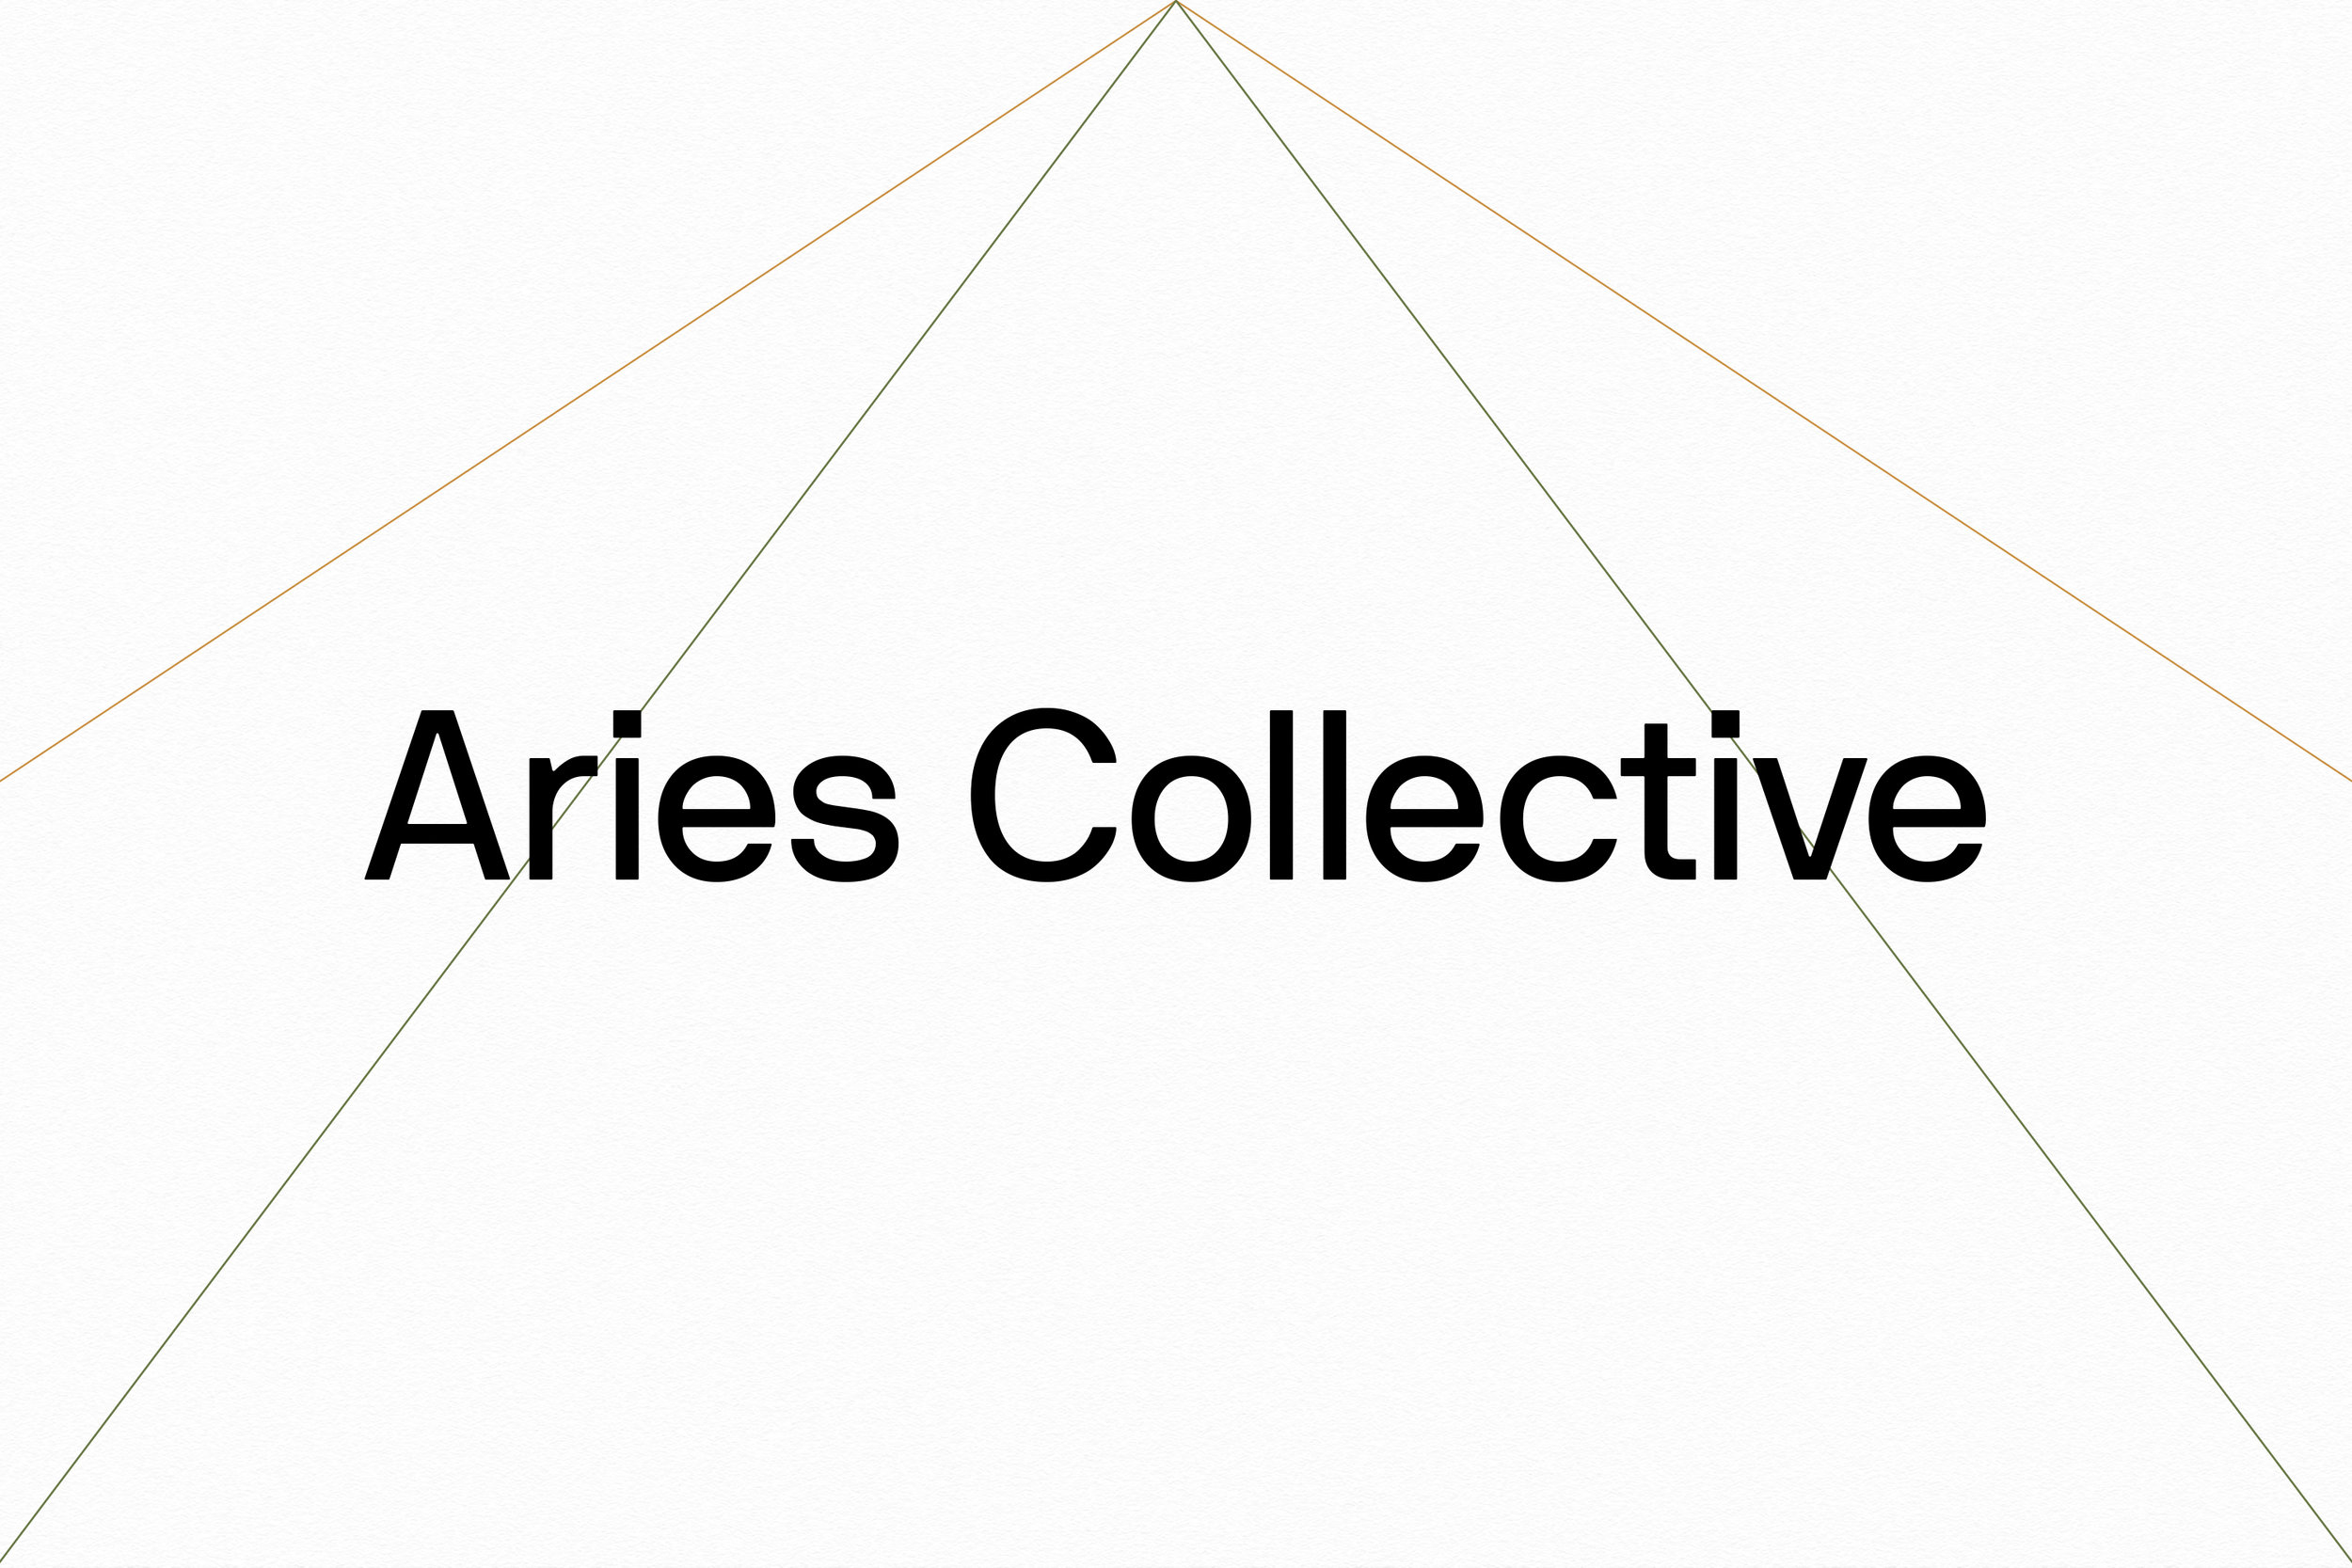 Aries_Collective_01.jpg